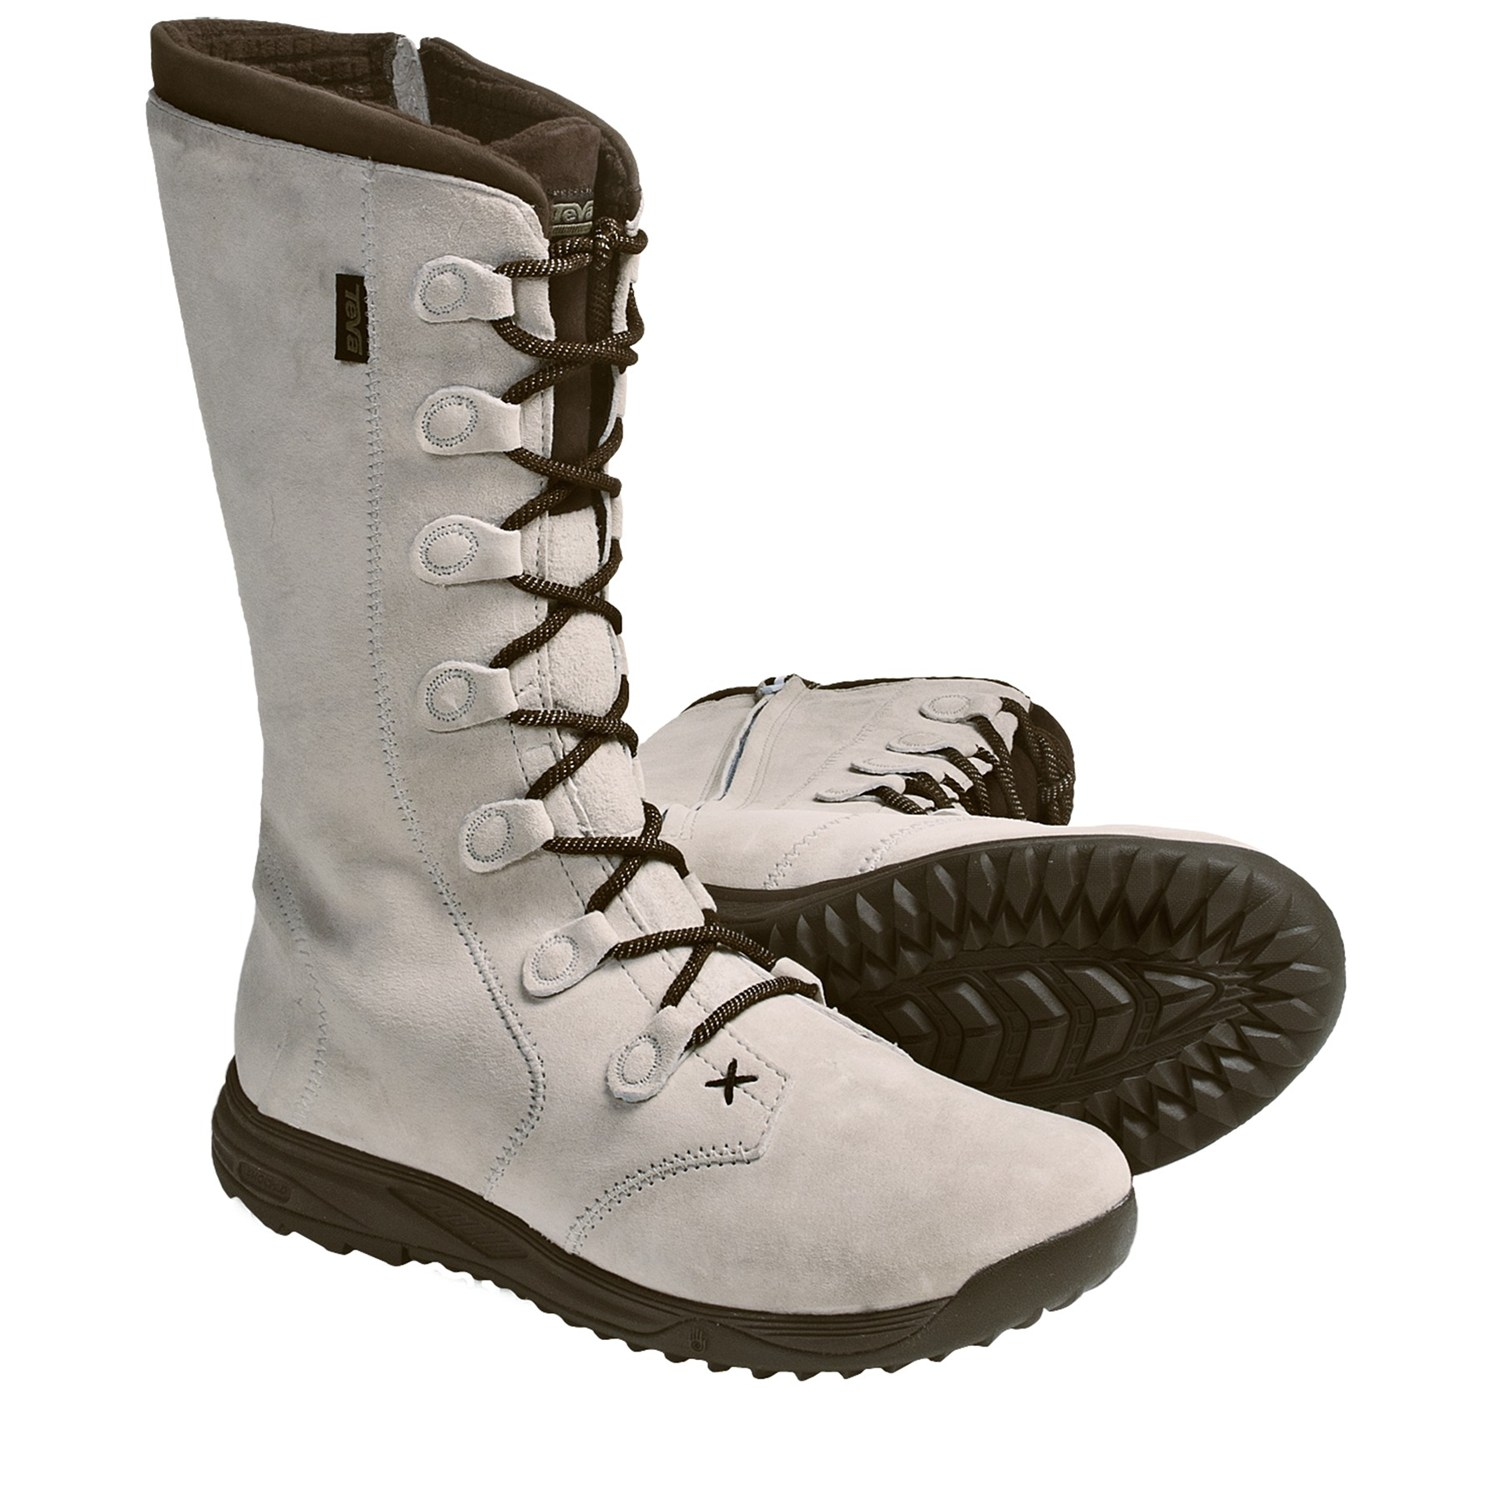 Luxury  Winter Boots  609736 Winter Amp Snow Boots At Sportsman39s Guide